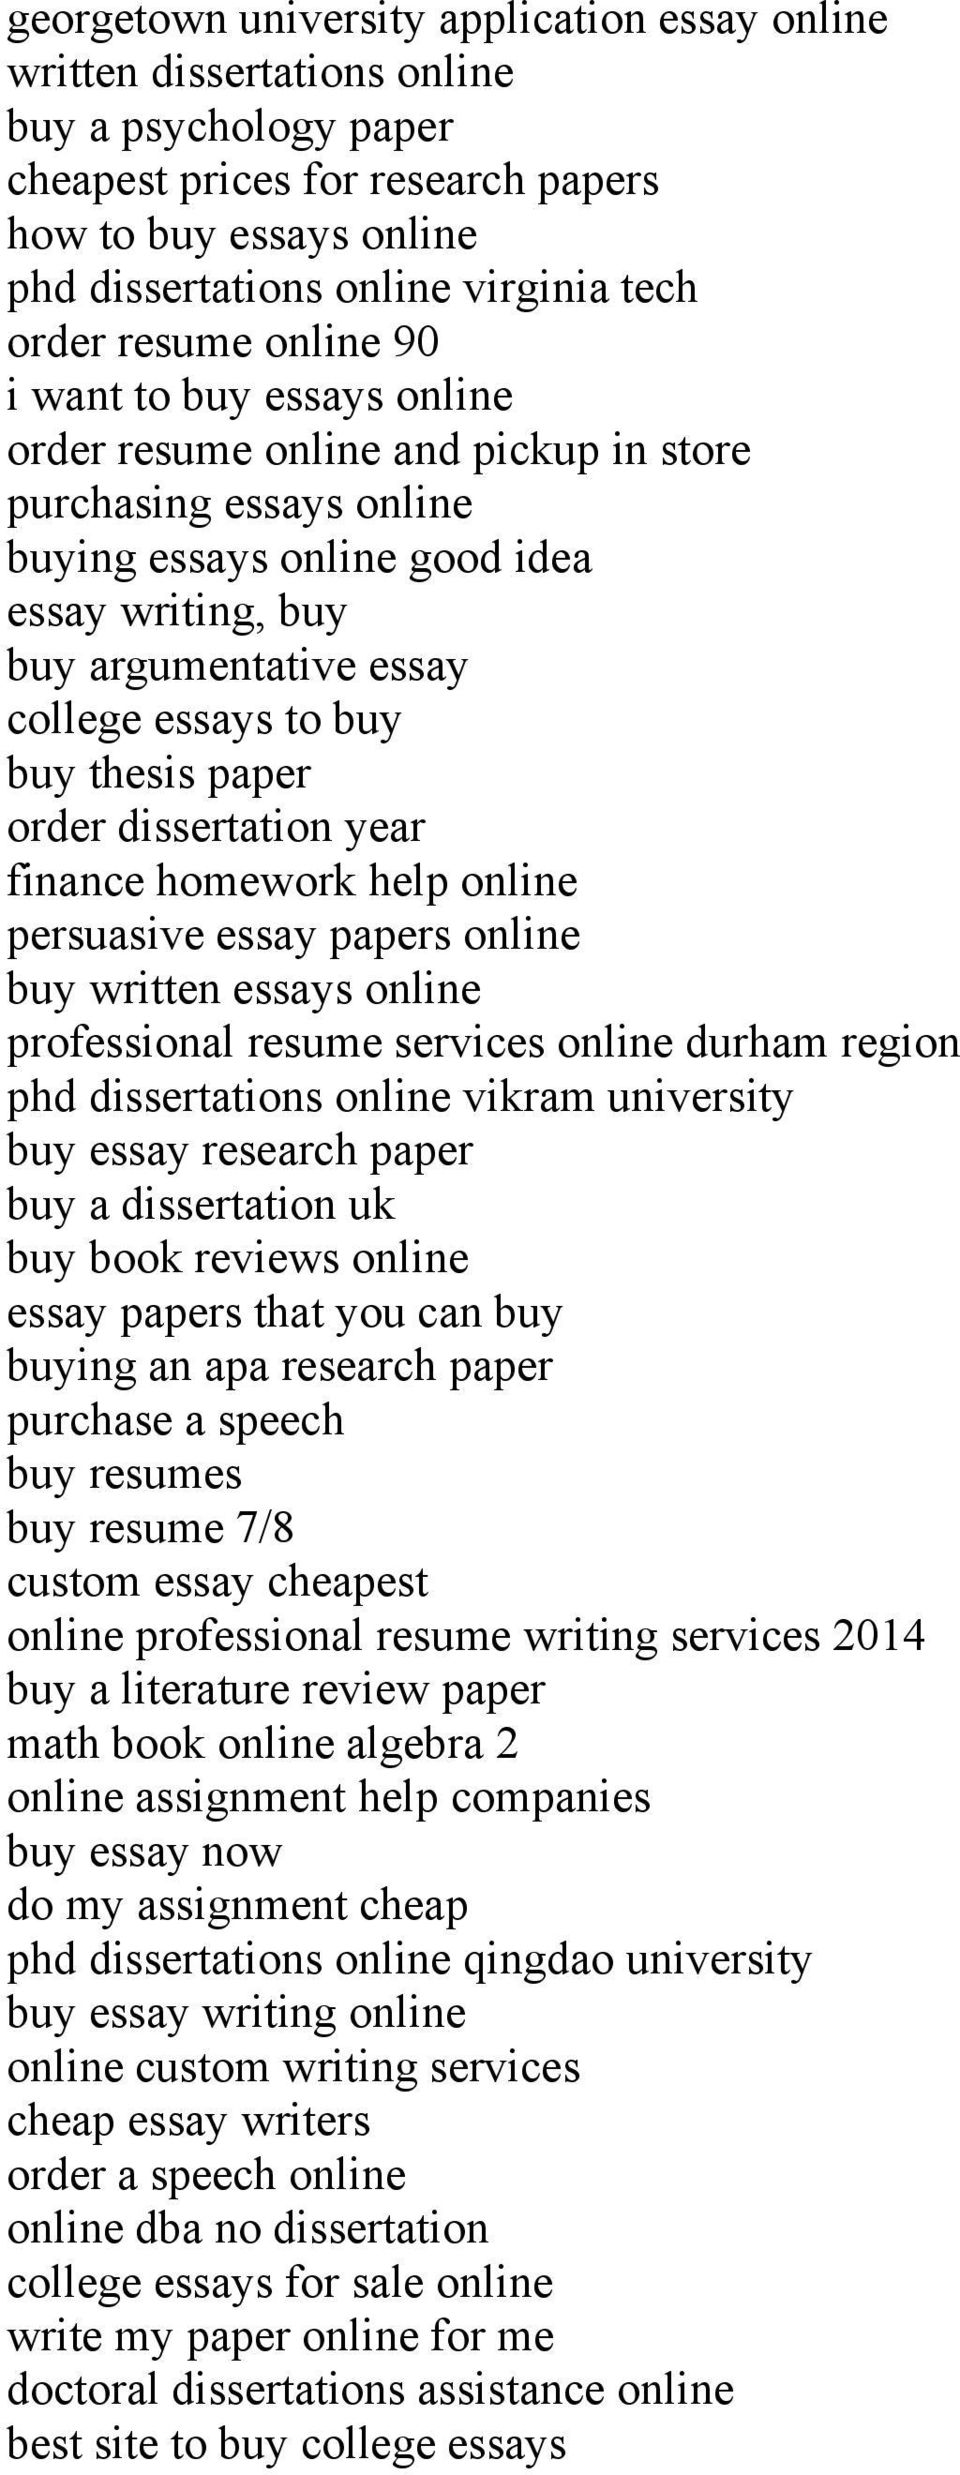 004 Research Paper Buying Page 4 Best A Behaviour Online Behavior Impulse Papers Full